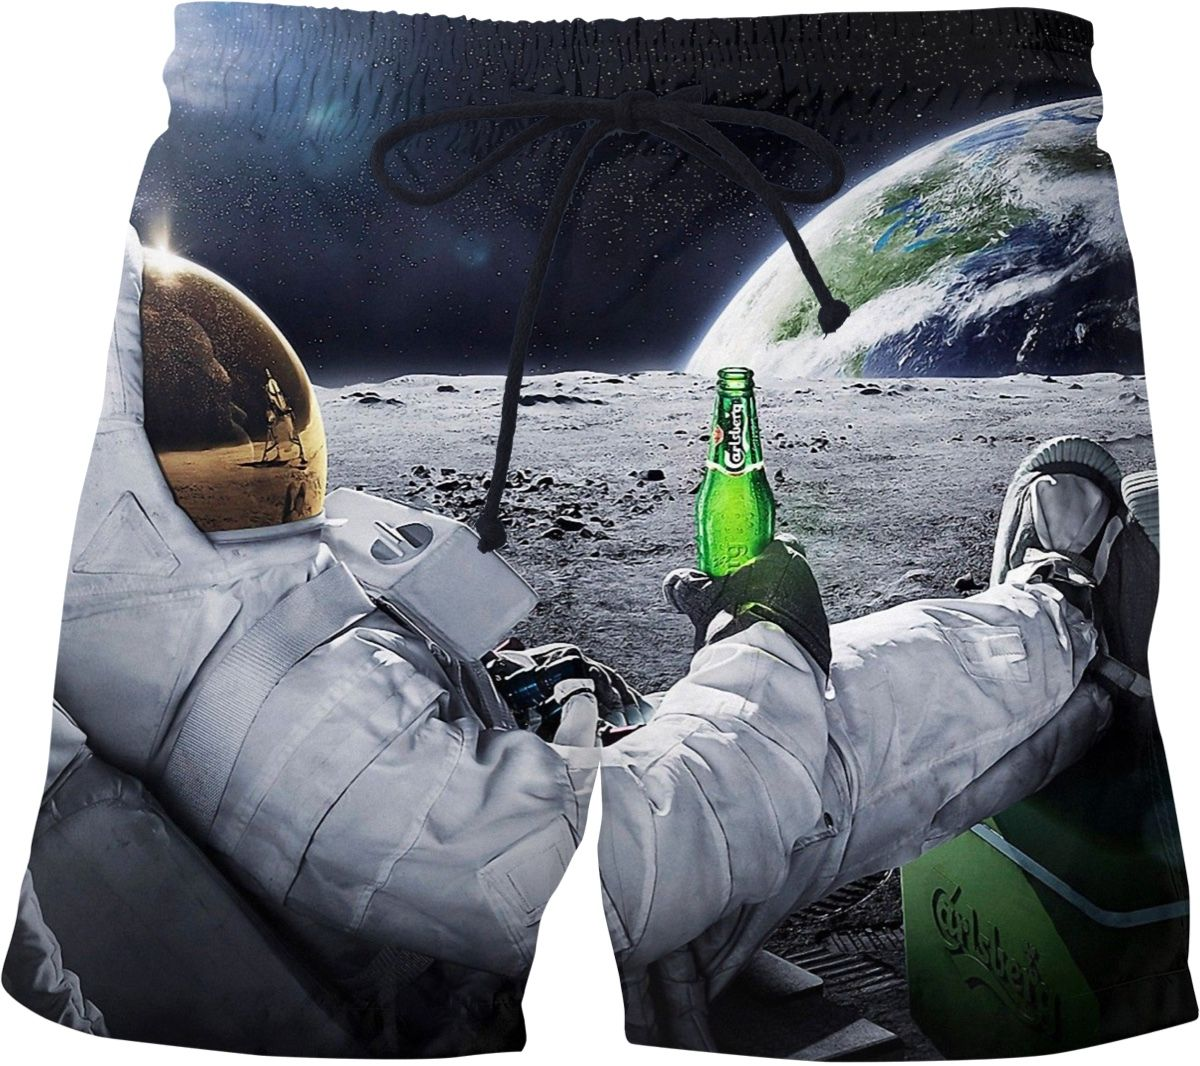 Pin By Blackkenneth On Outrageous All Over Print Apparel And Home Goods Really Cool Backgrounds Astronaut Wallpaper Wallpaper Space